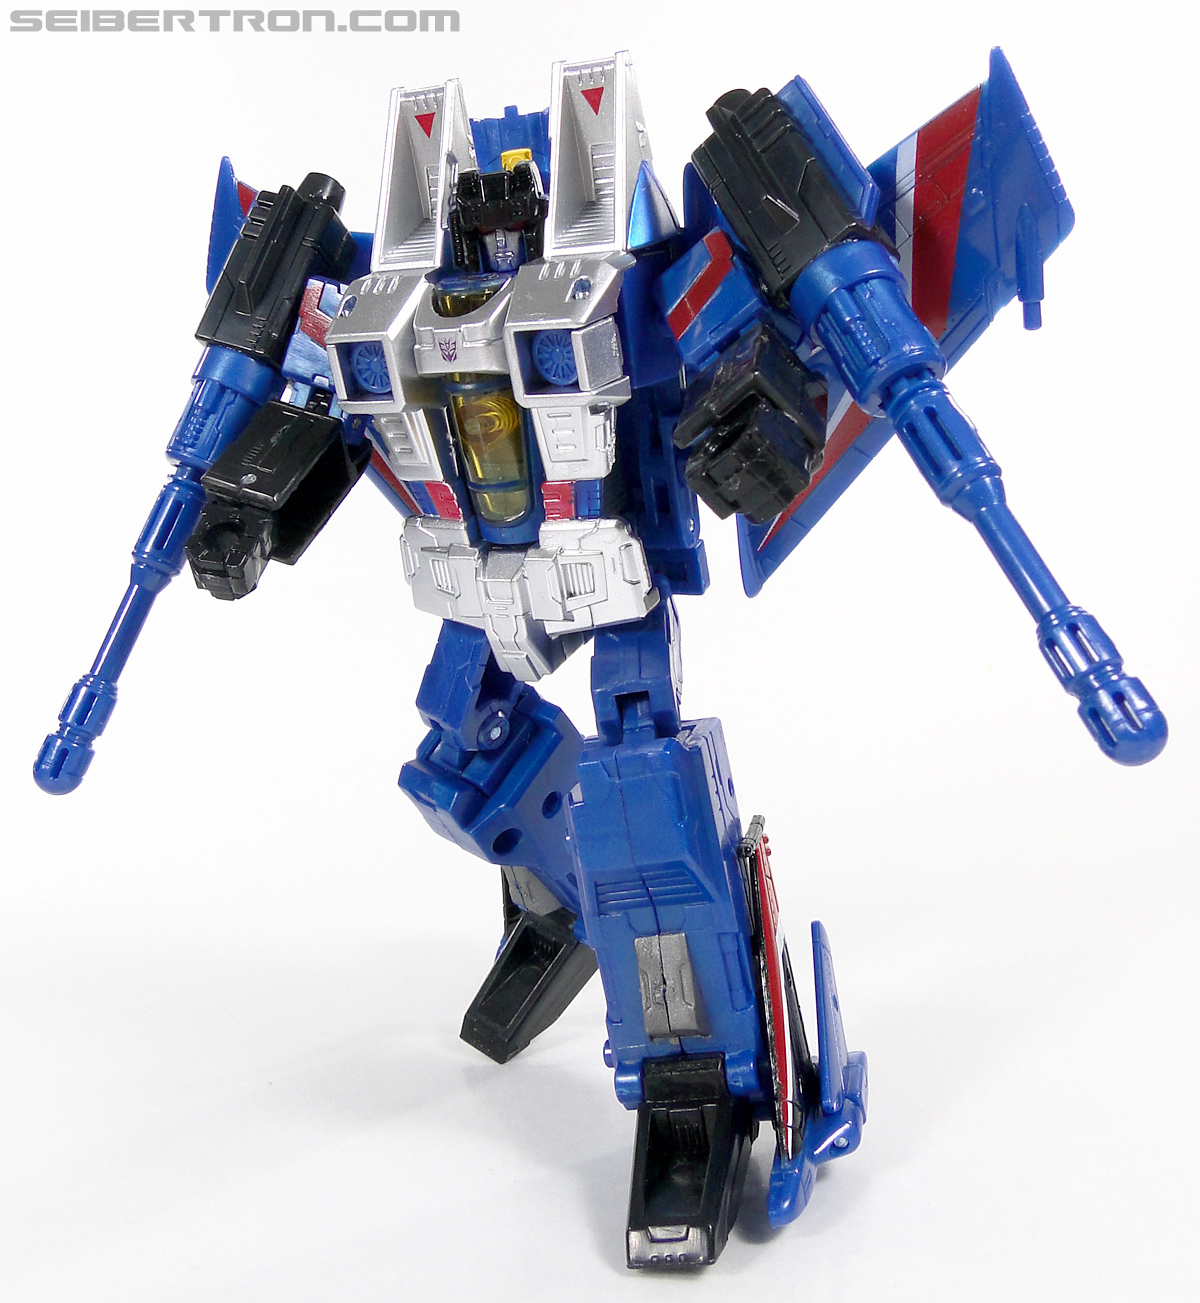 Transformers Generations Thundercracker (Image #143 of 219)